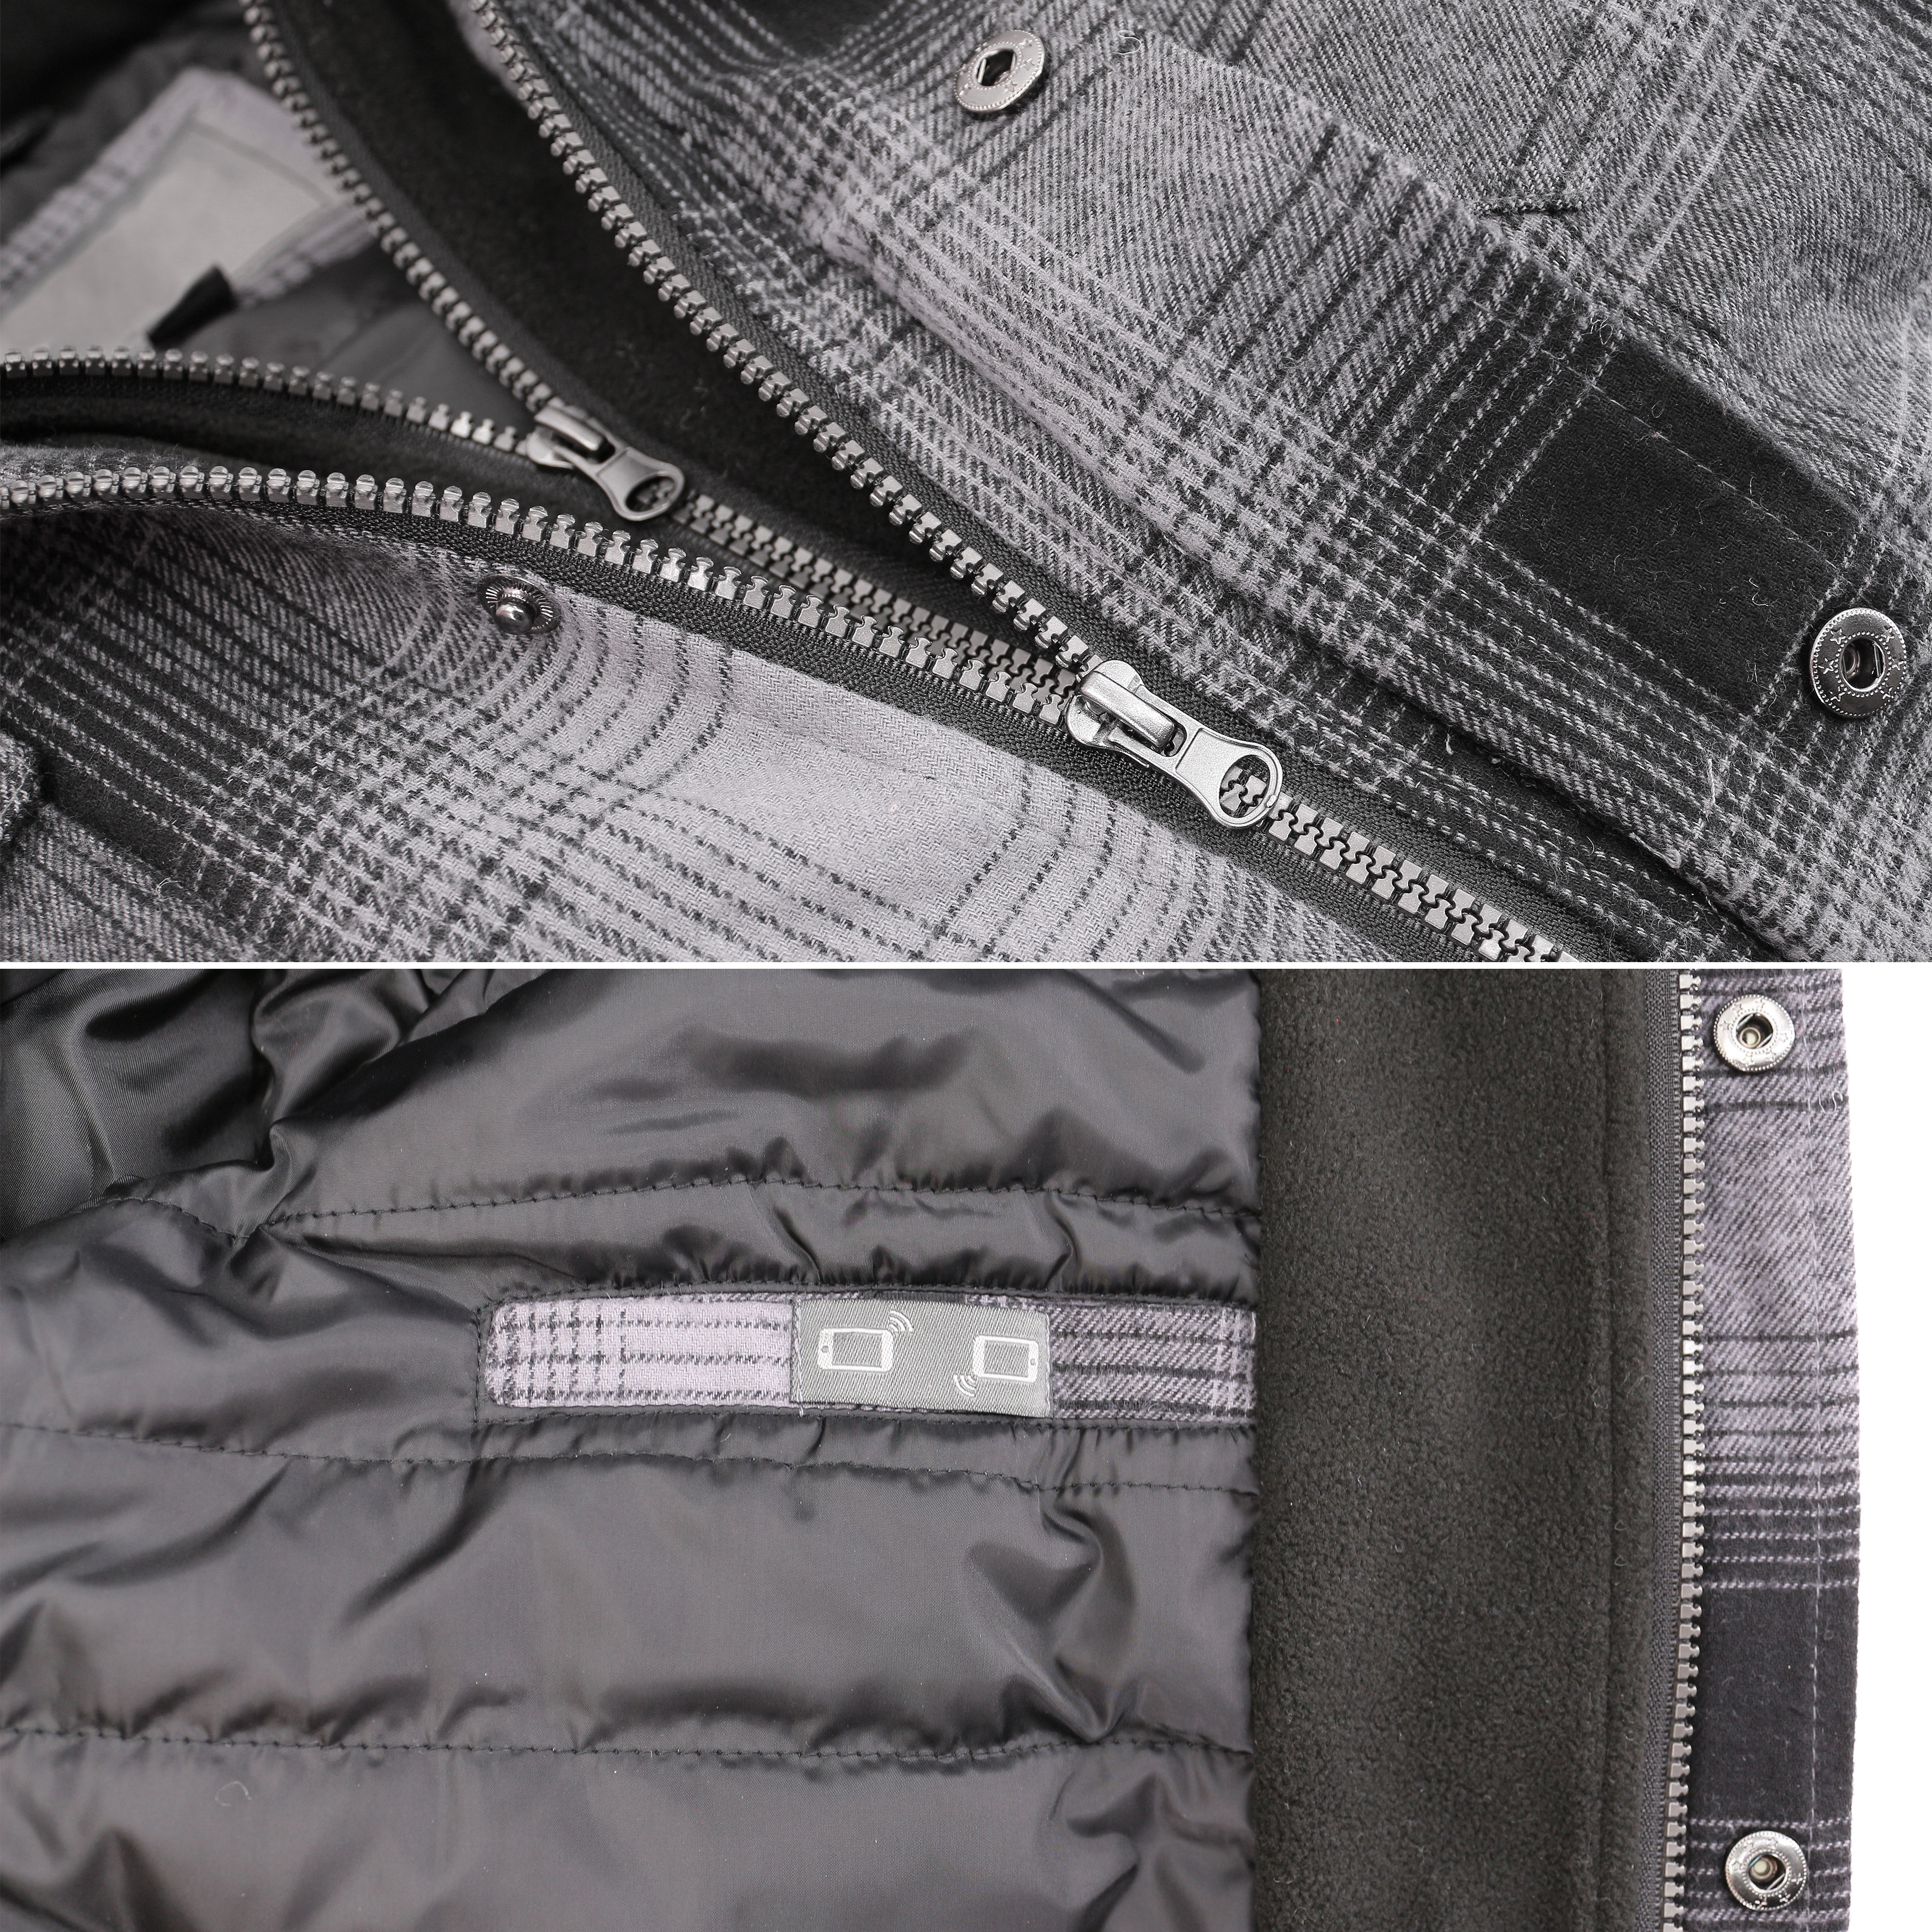 vkwear-Men-039-s-Quilted-Lined-Cotton-Plaid-Flannel-Layered-Zip-Up-Hoodie-Jacket thumbnail 11